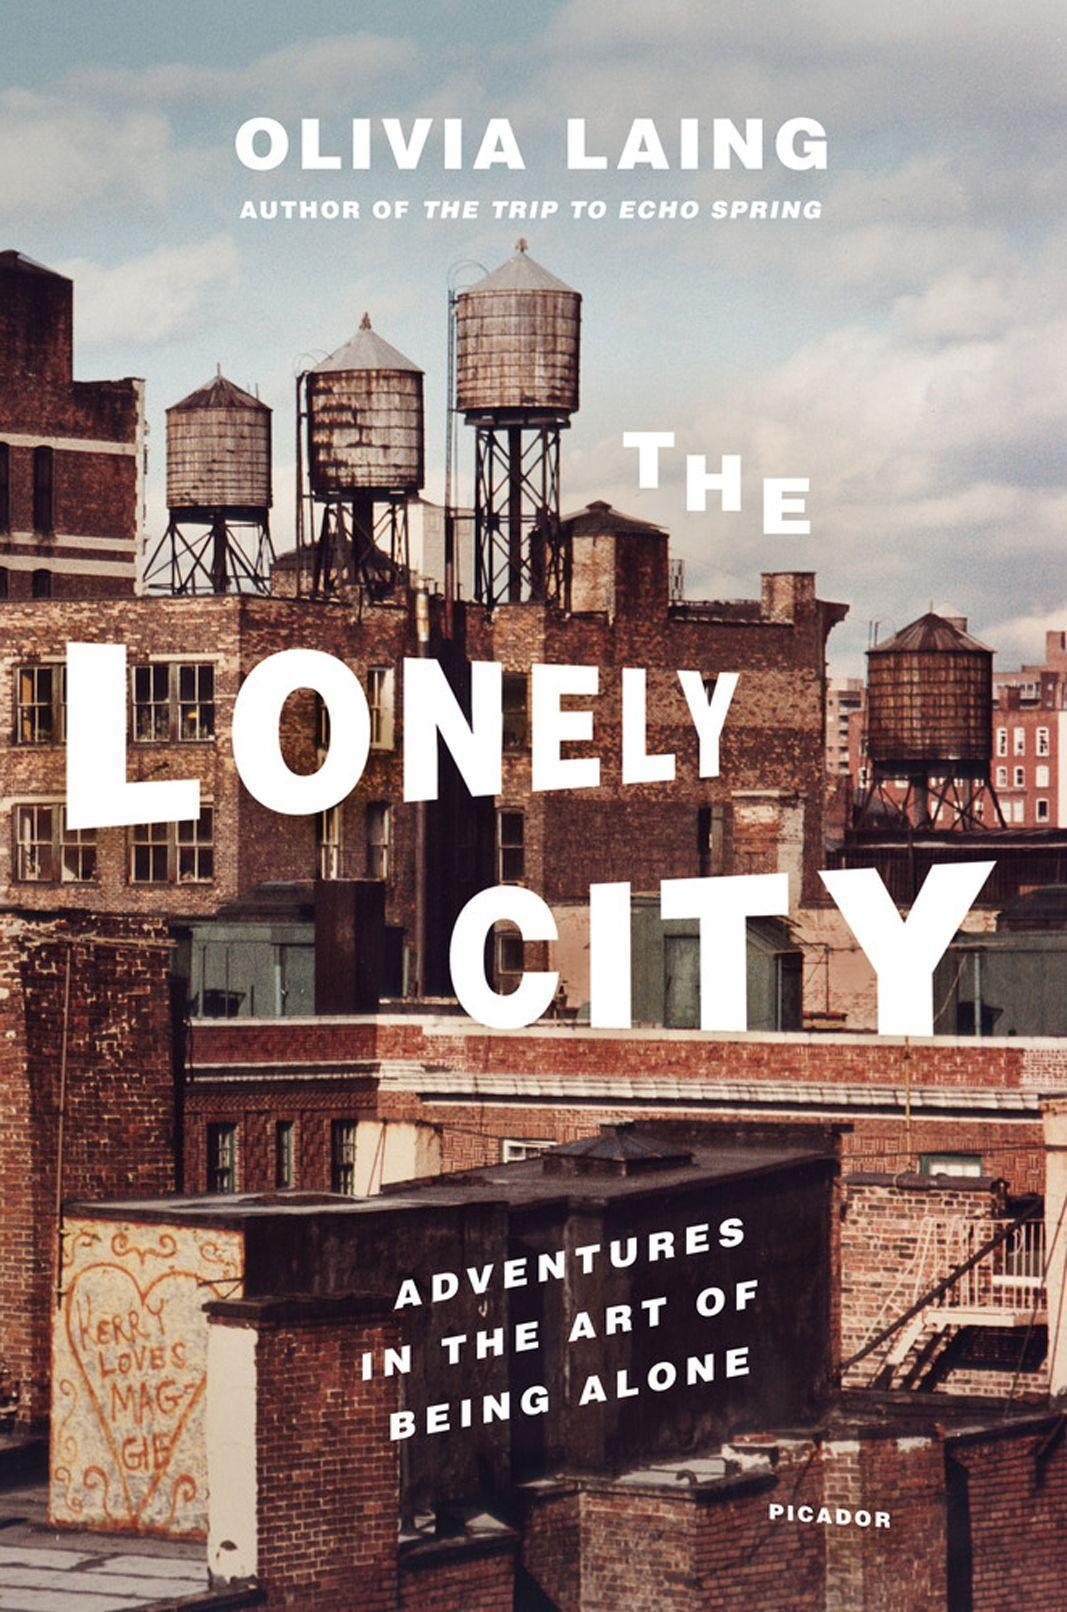 <p><strong><em>The Lonely City</em></strong></p> <p>By Olivia Laing</p> <p>As increasing numbers of us opt for solo living, it's worth thinking about what loneliness means, both for us as individuals and as a society. That's where Olivia Laing's <em>The Lonely City</em> comes in. When she moved to New York in her mid-30s, Laing found herself lonely and ashamed. But instead of letting it get the better of her, she channelled it into this remarkable work of memoir, biography and cultural criticism. A must-read for everyone, not just the loners among us.</p>